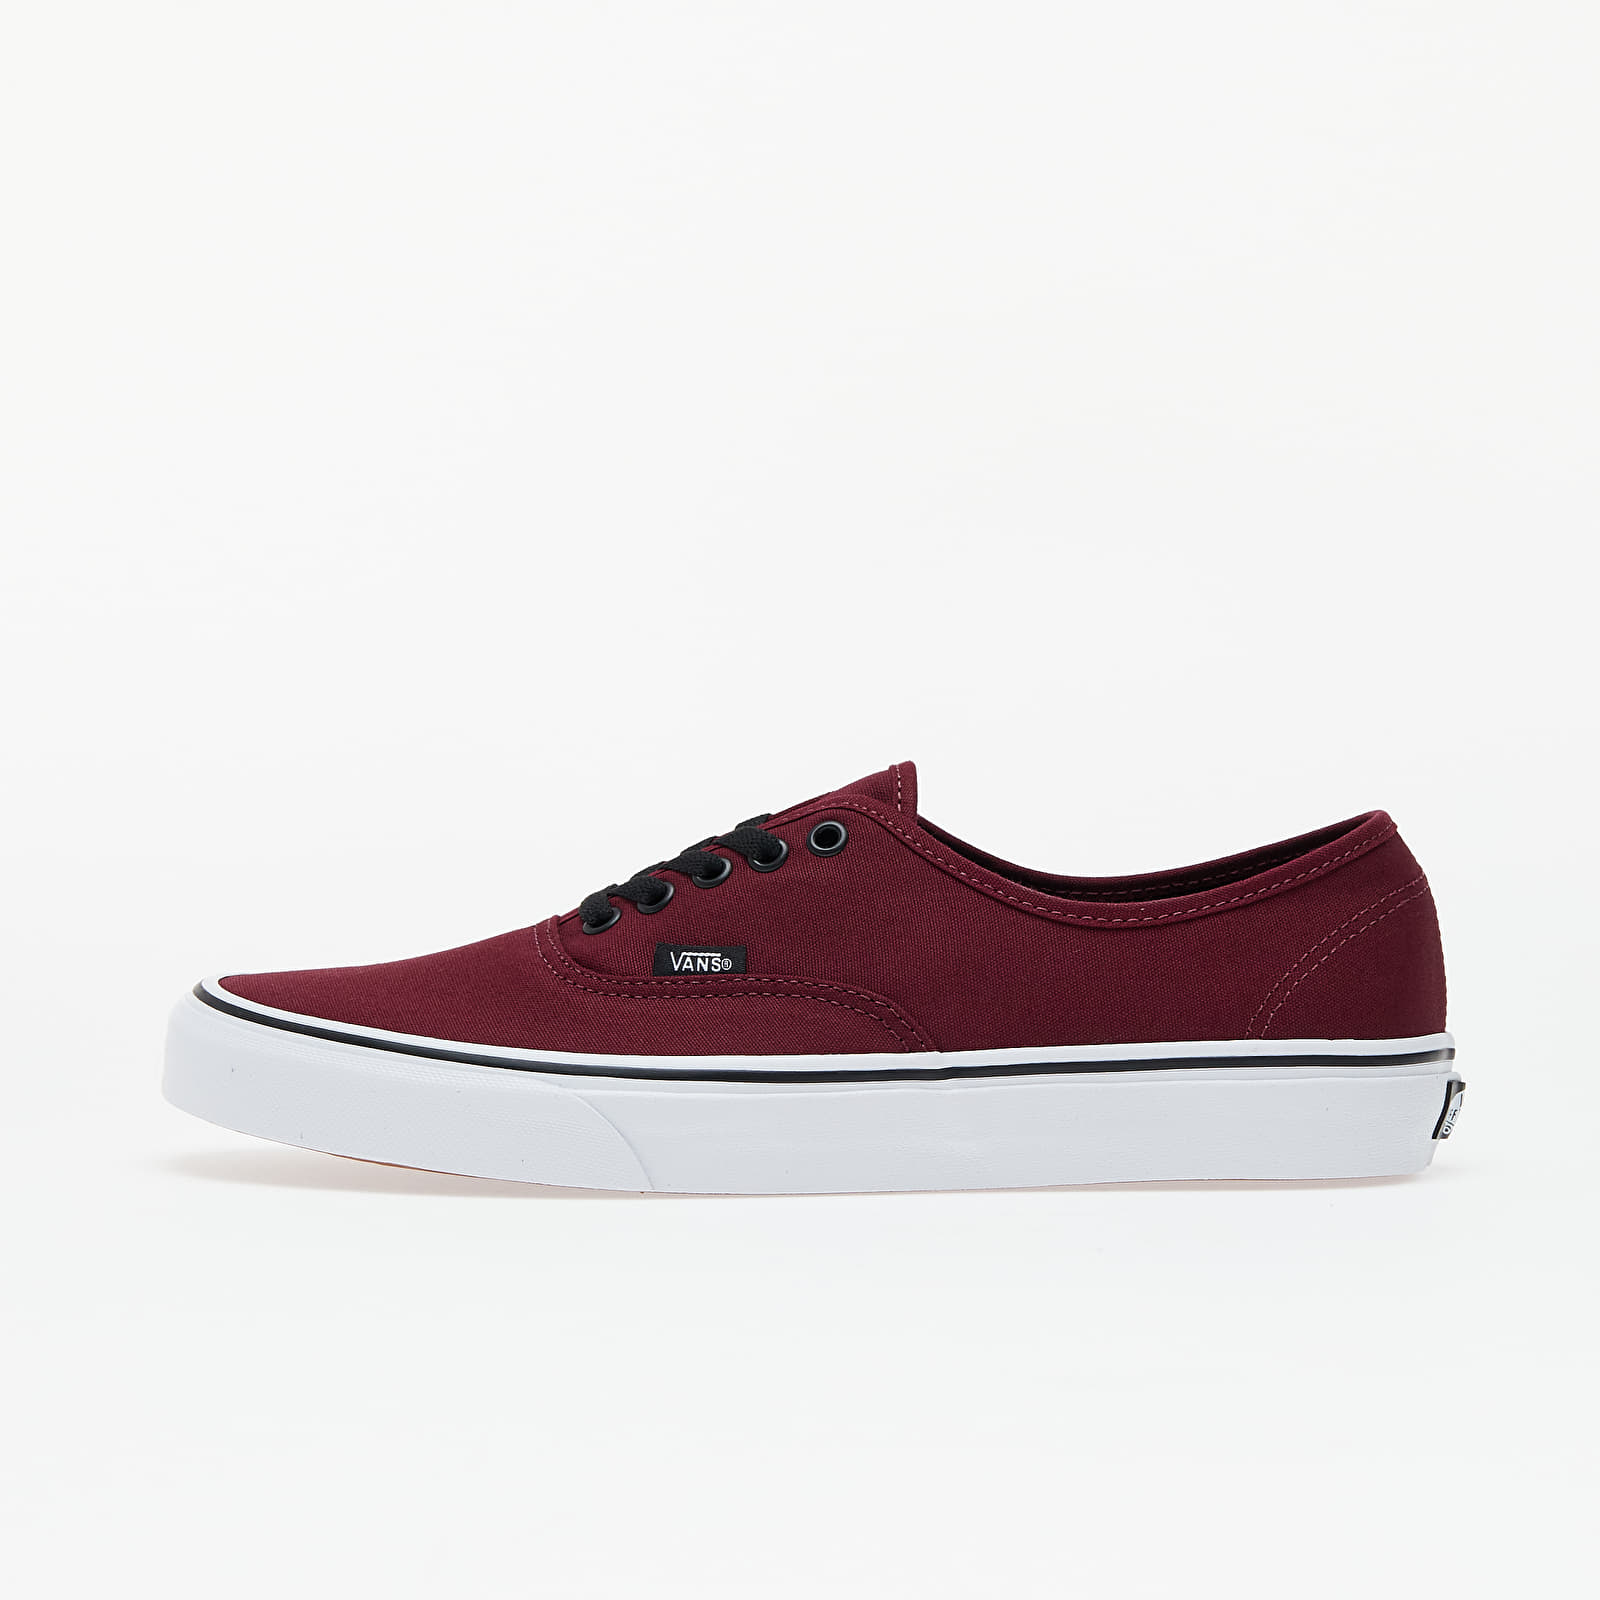 Vans Authentic Port Royale/Black EUR 35